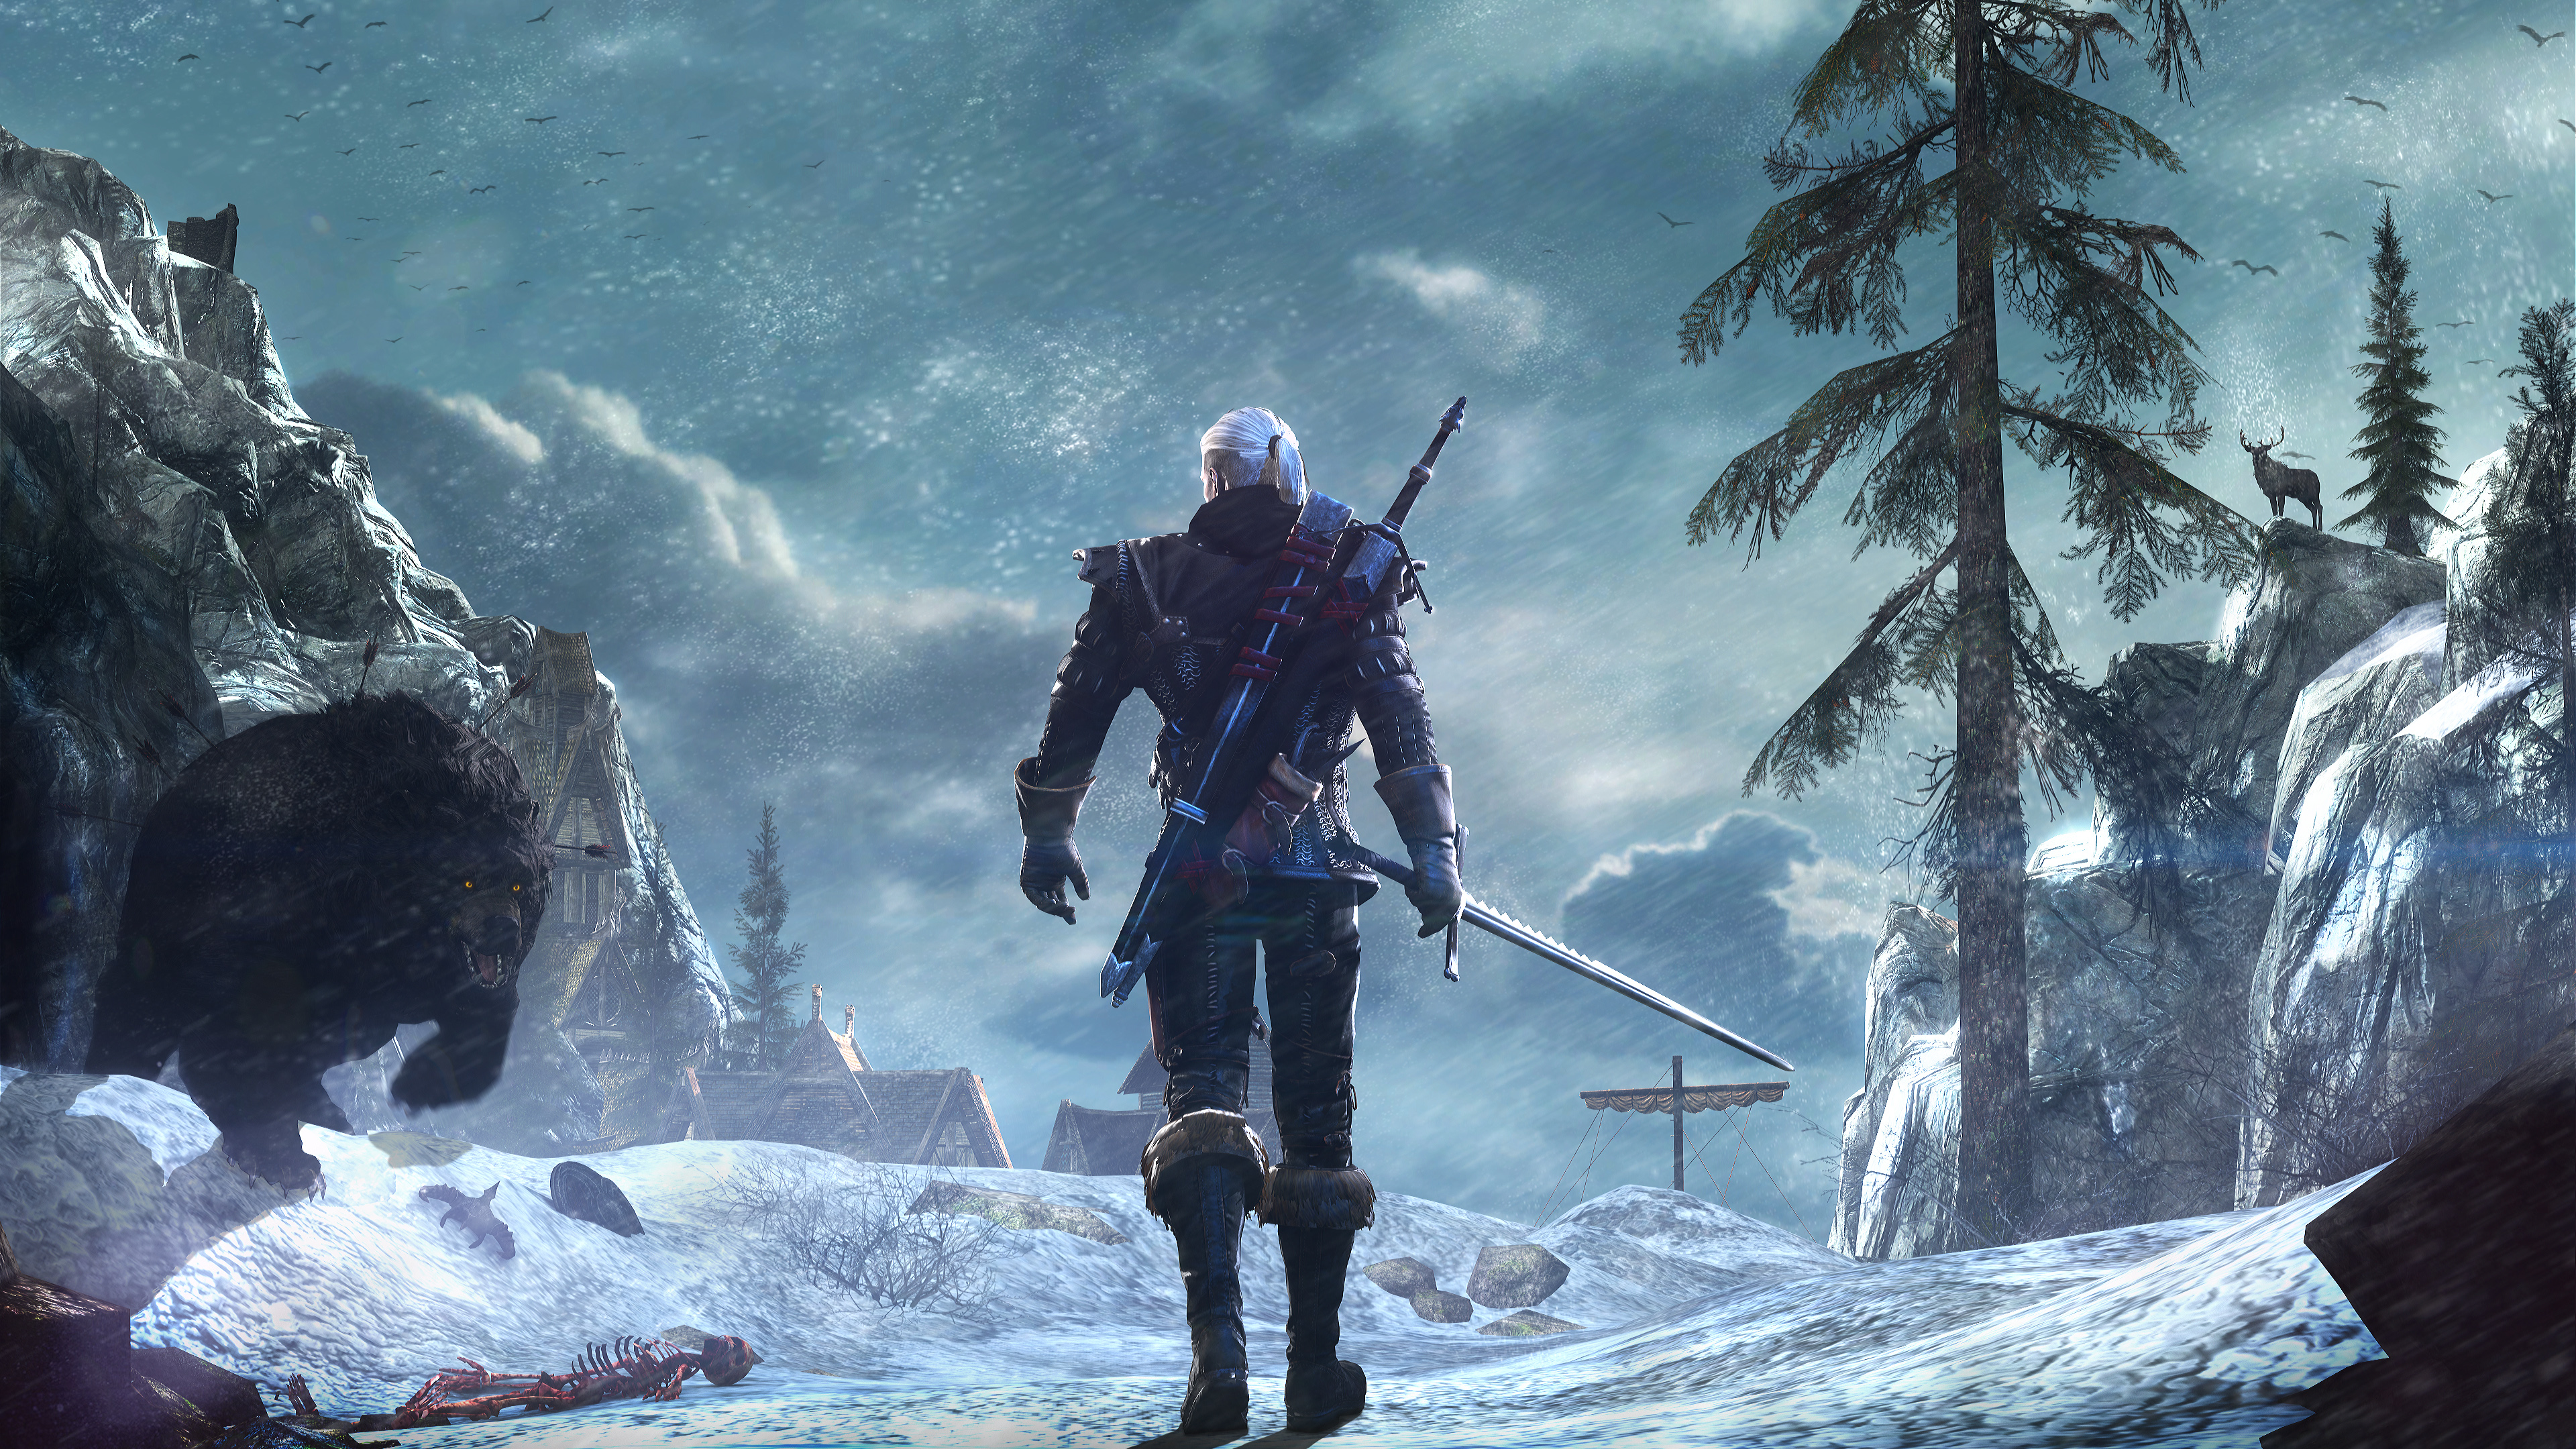 The Witcher 3 1080 X 2160 Wallpaper: Witcher 3 4K Wallpaper